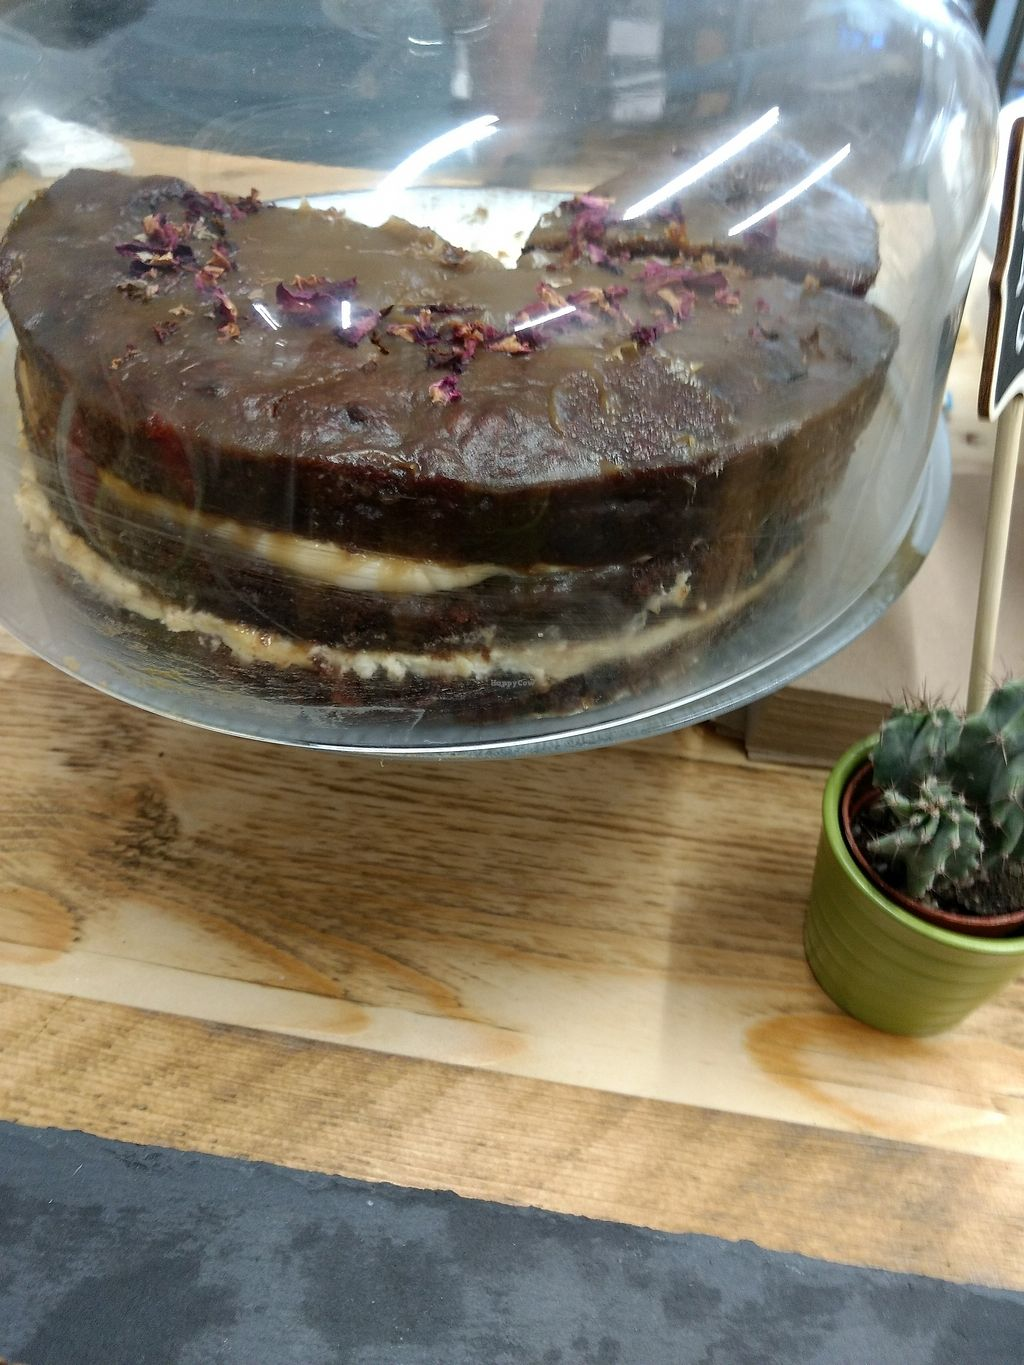 "Photo of The Herbivore Kitchen  by <a href=""/members/profile/craigmc"">craigmc</a> <br/>cake <br/> July 29, 2017  - <a href='/contact/abuse/image/97309/286226'>Report</a>"